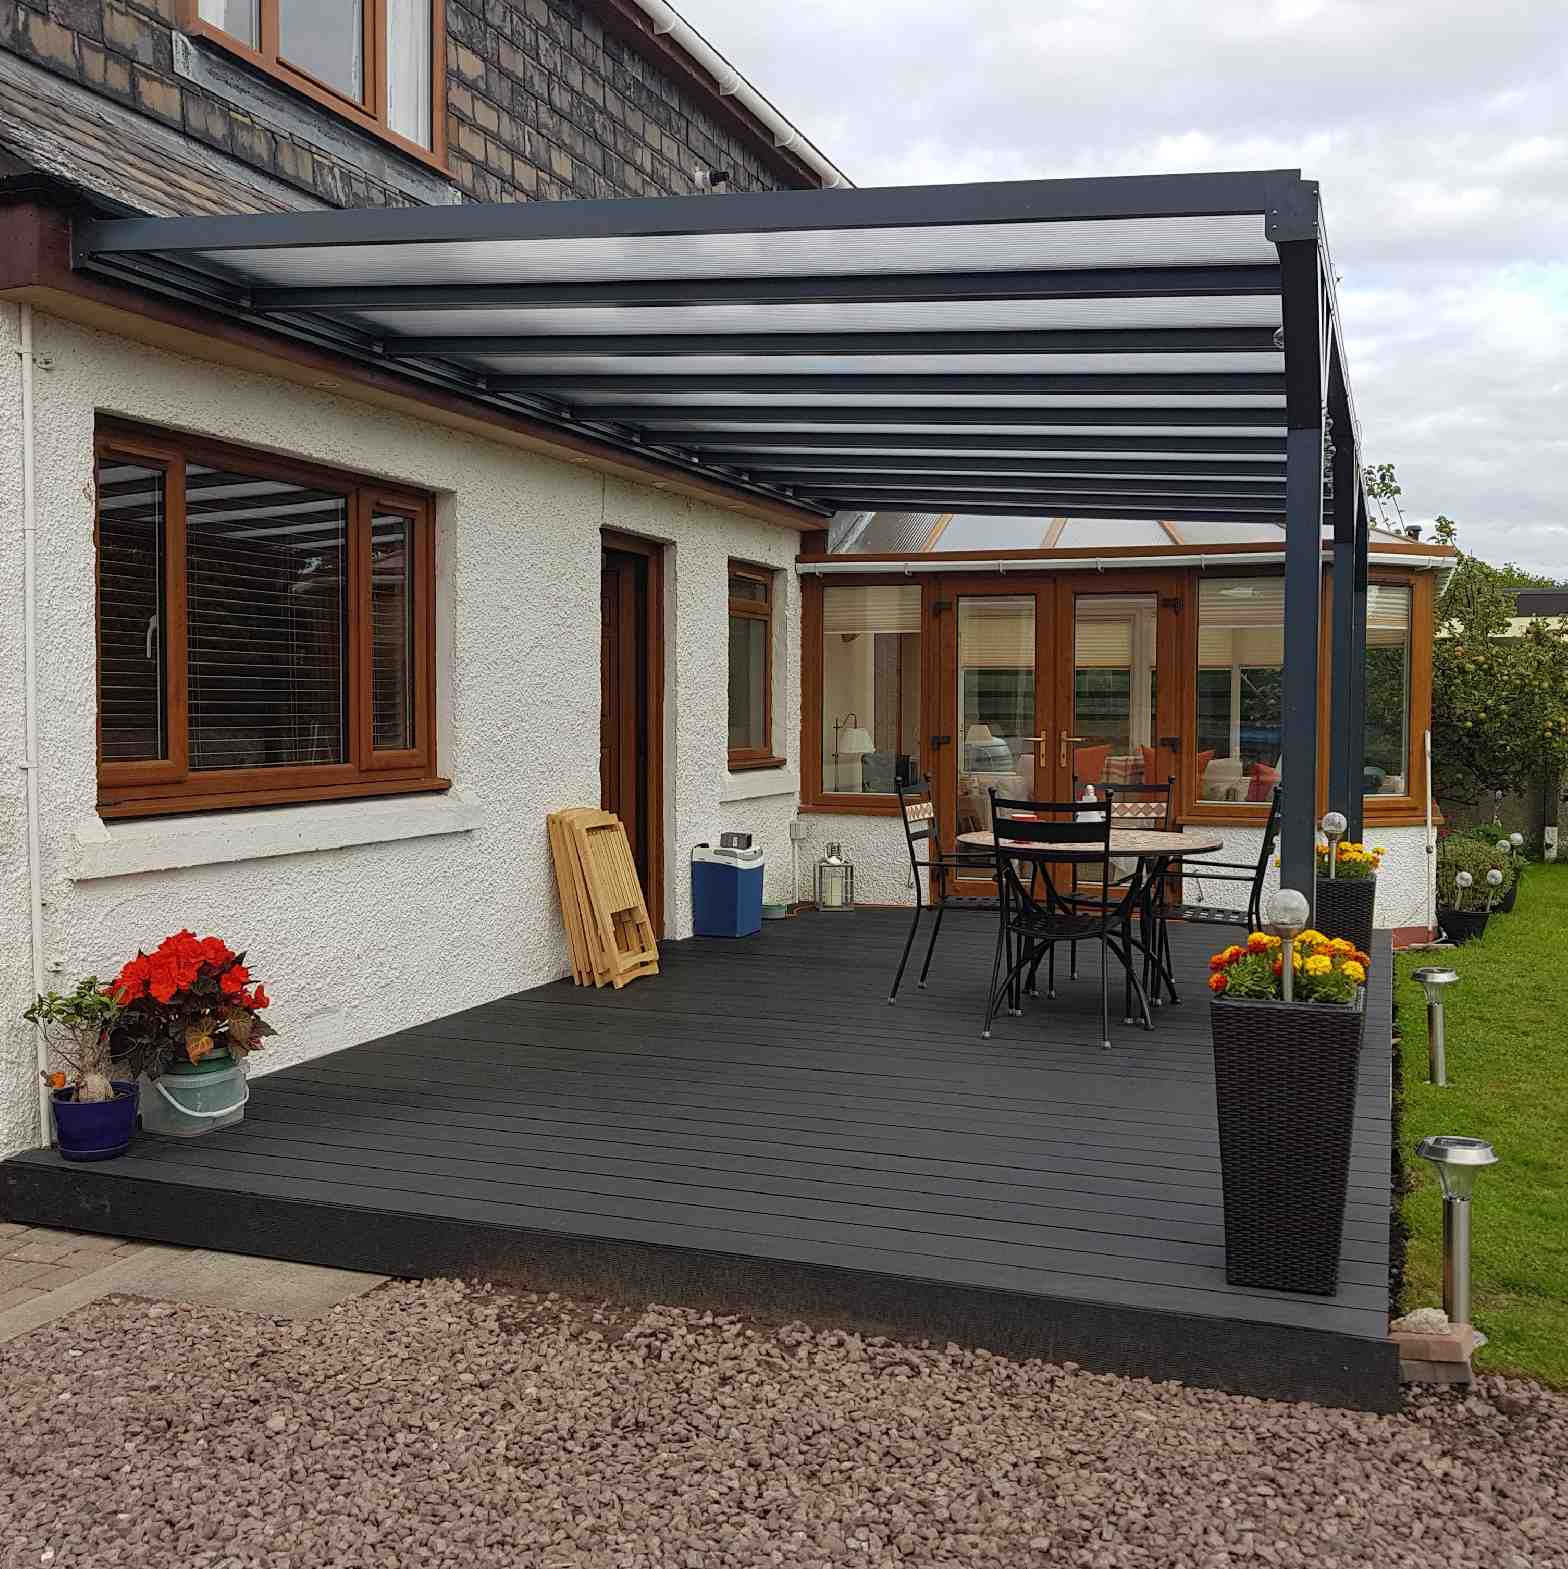 Buy Omega Verandah, Anthracite Grey, 16mm Polycarbonate Glazing - 8.4m (W) x 4.0m (P), (4) Supporting Posts online today